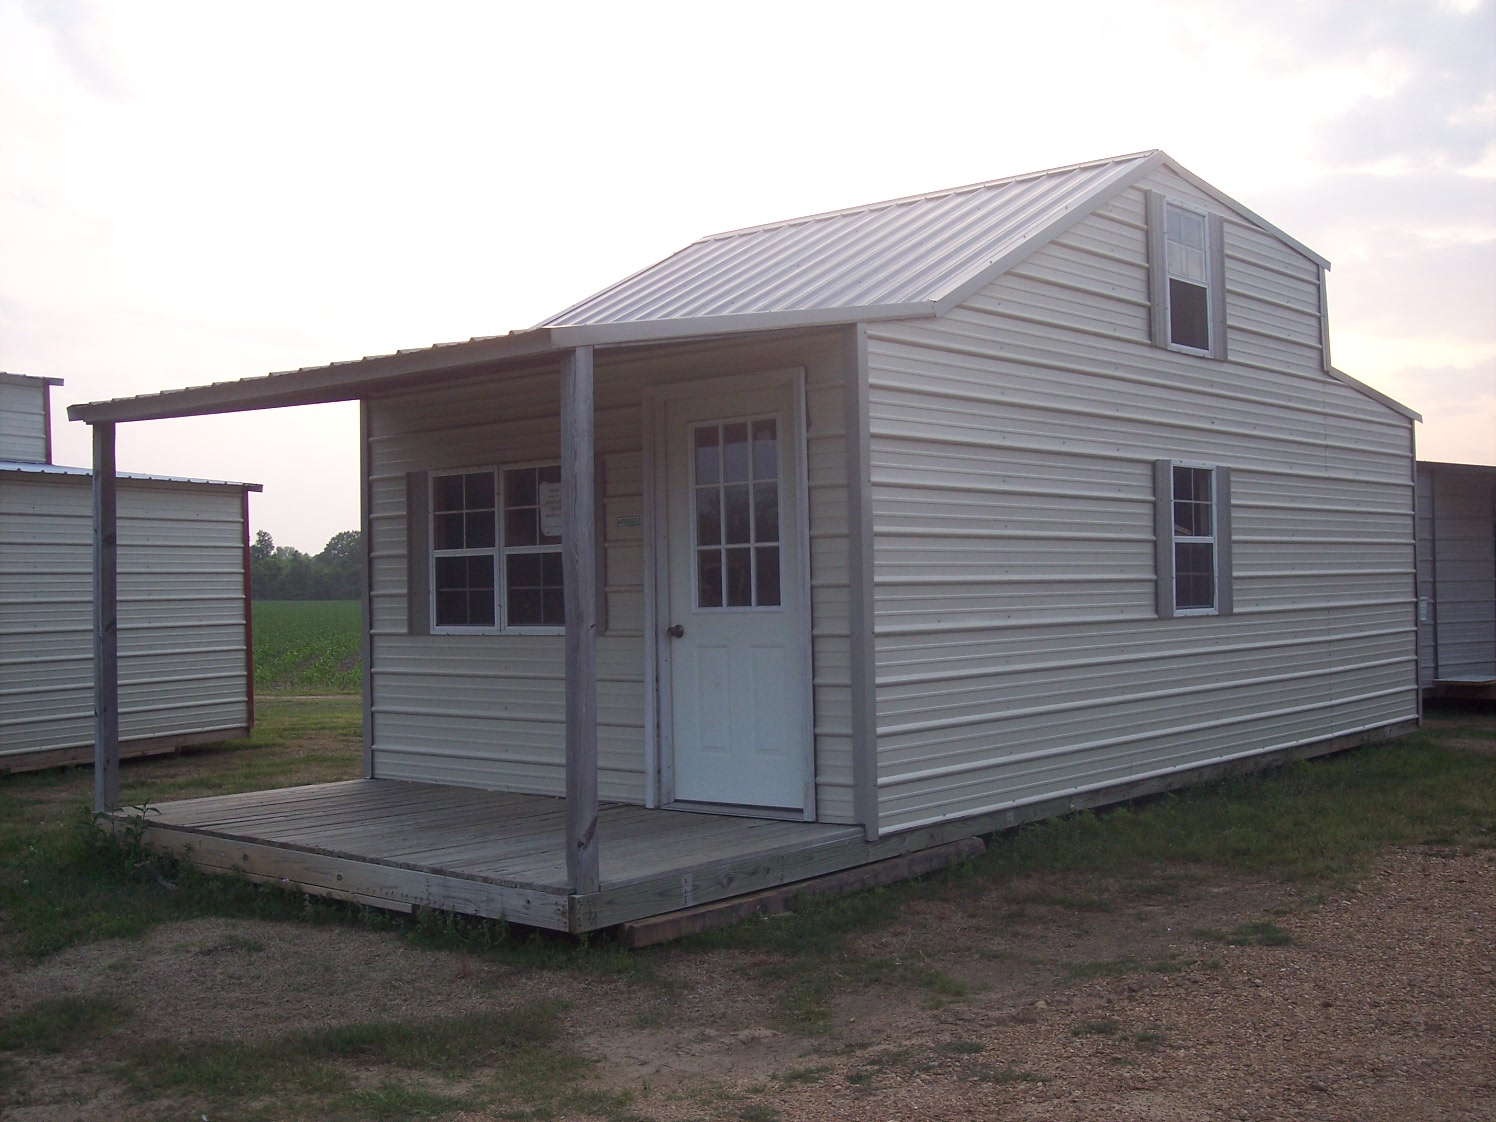 Tan and gray storage building with loft and porch for Shed with porch and loft